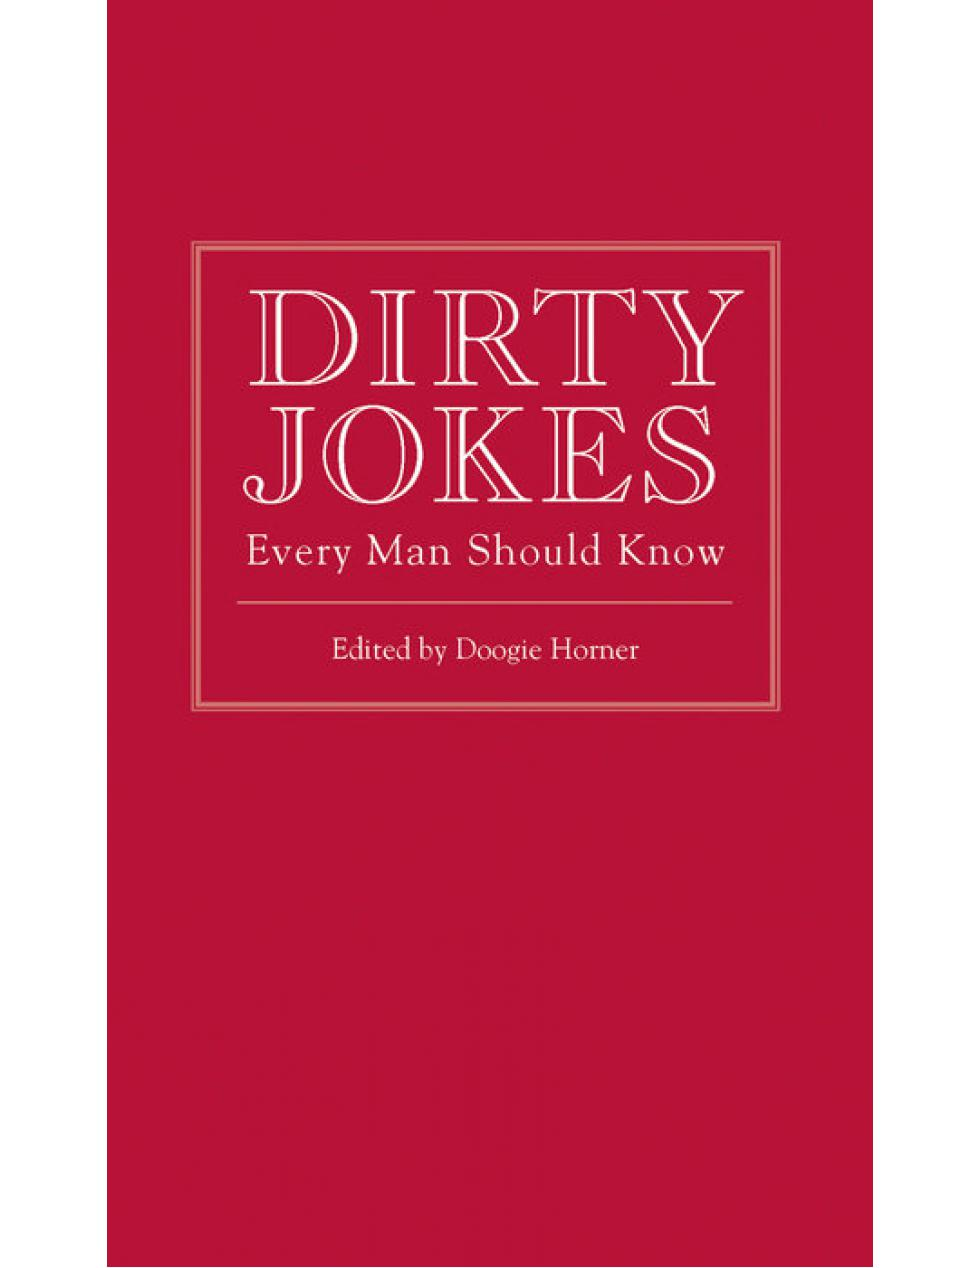 DIRTY JOKES EVERY MAN SHOULD KNOW - Boekenmarkt de Markies